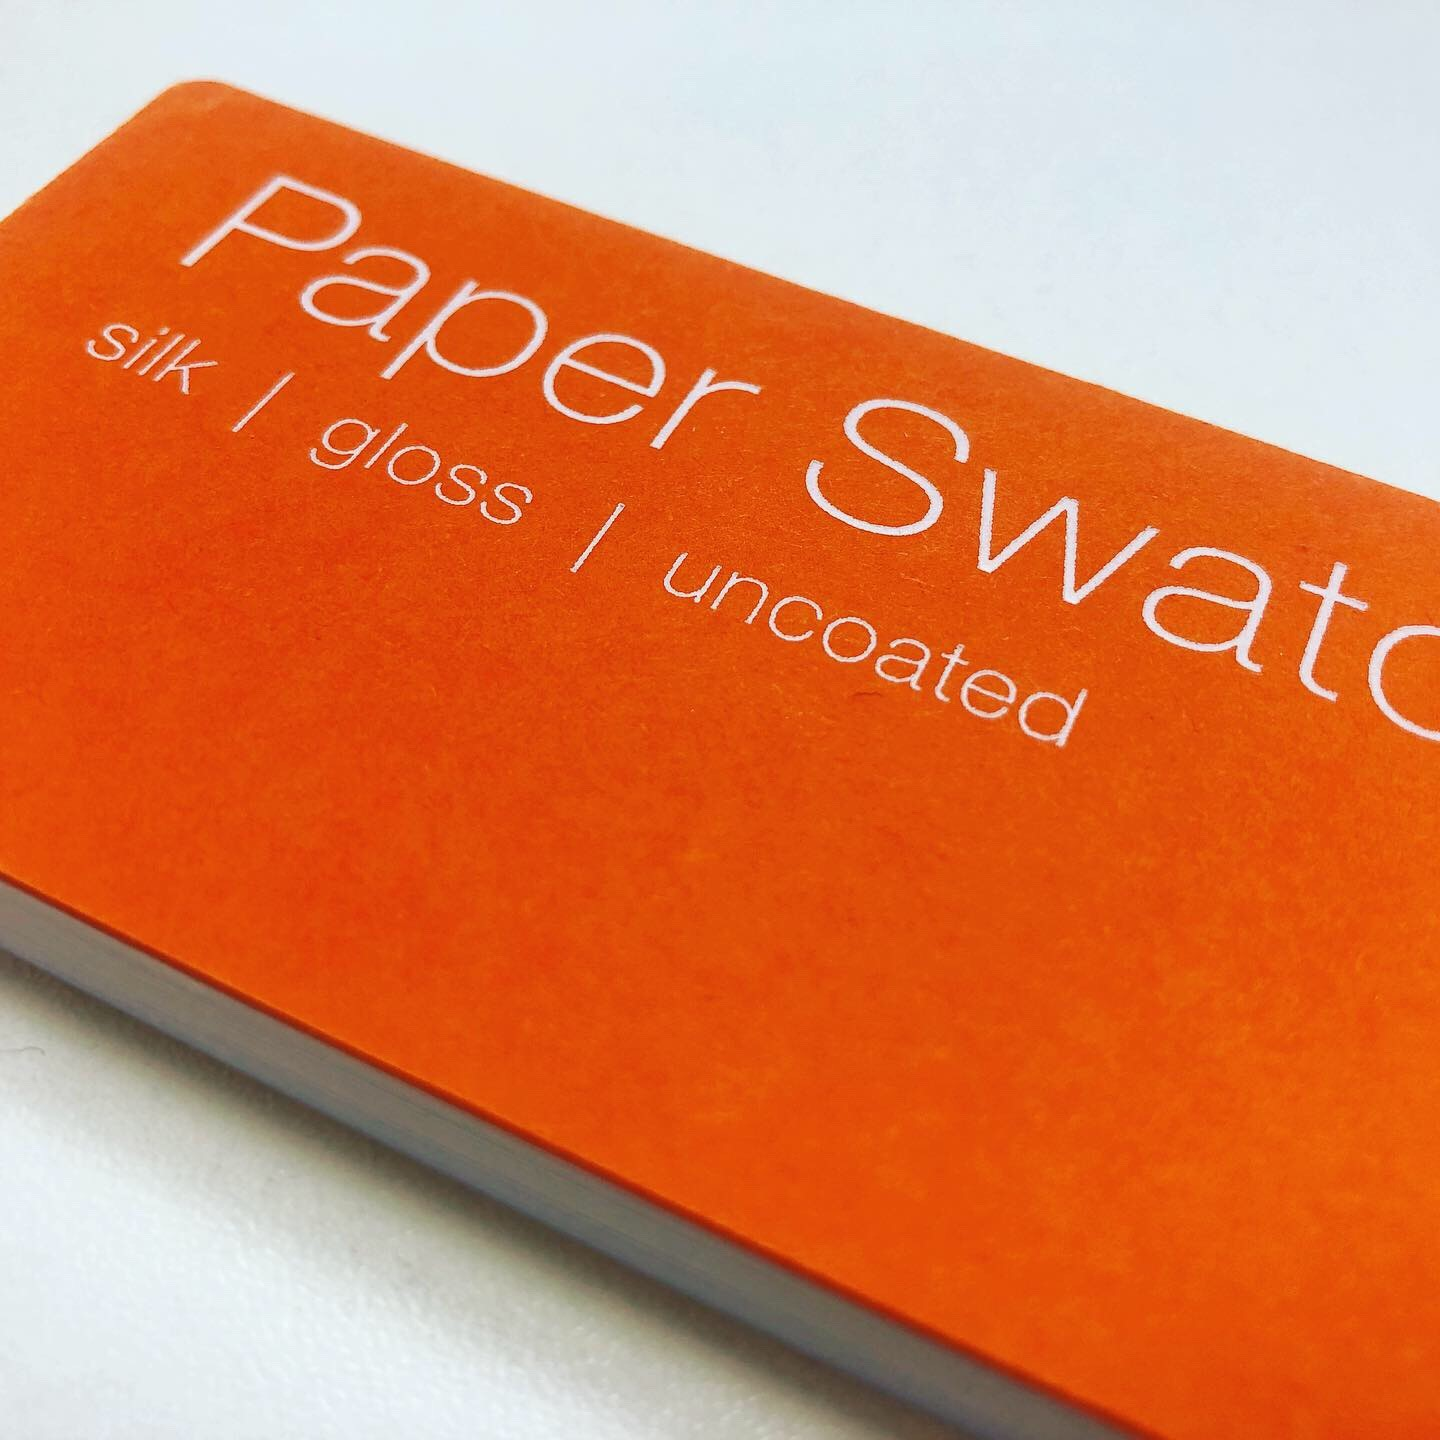 Printed Swatch Book